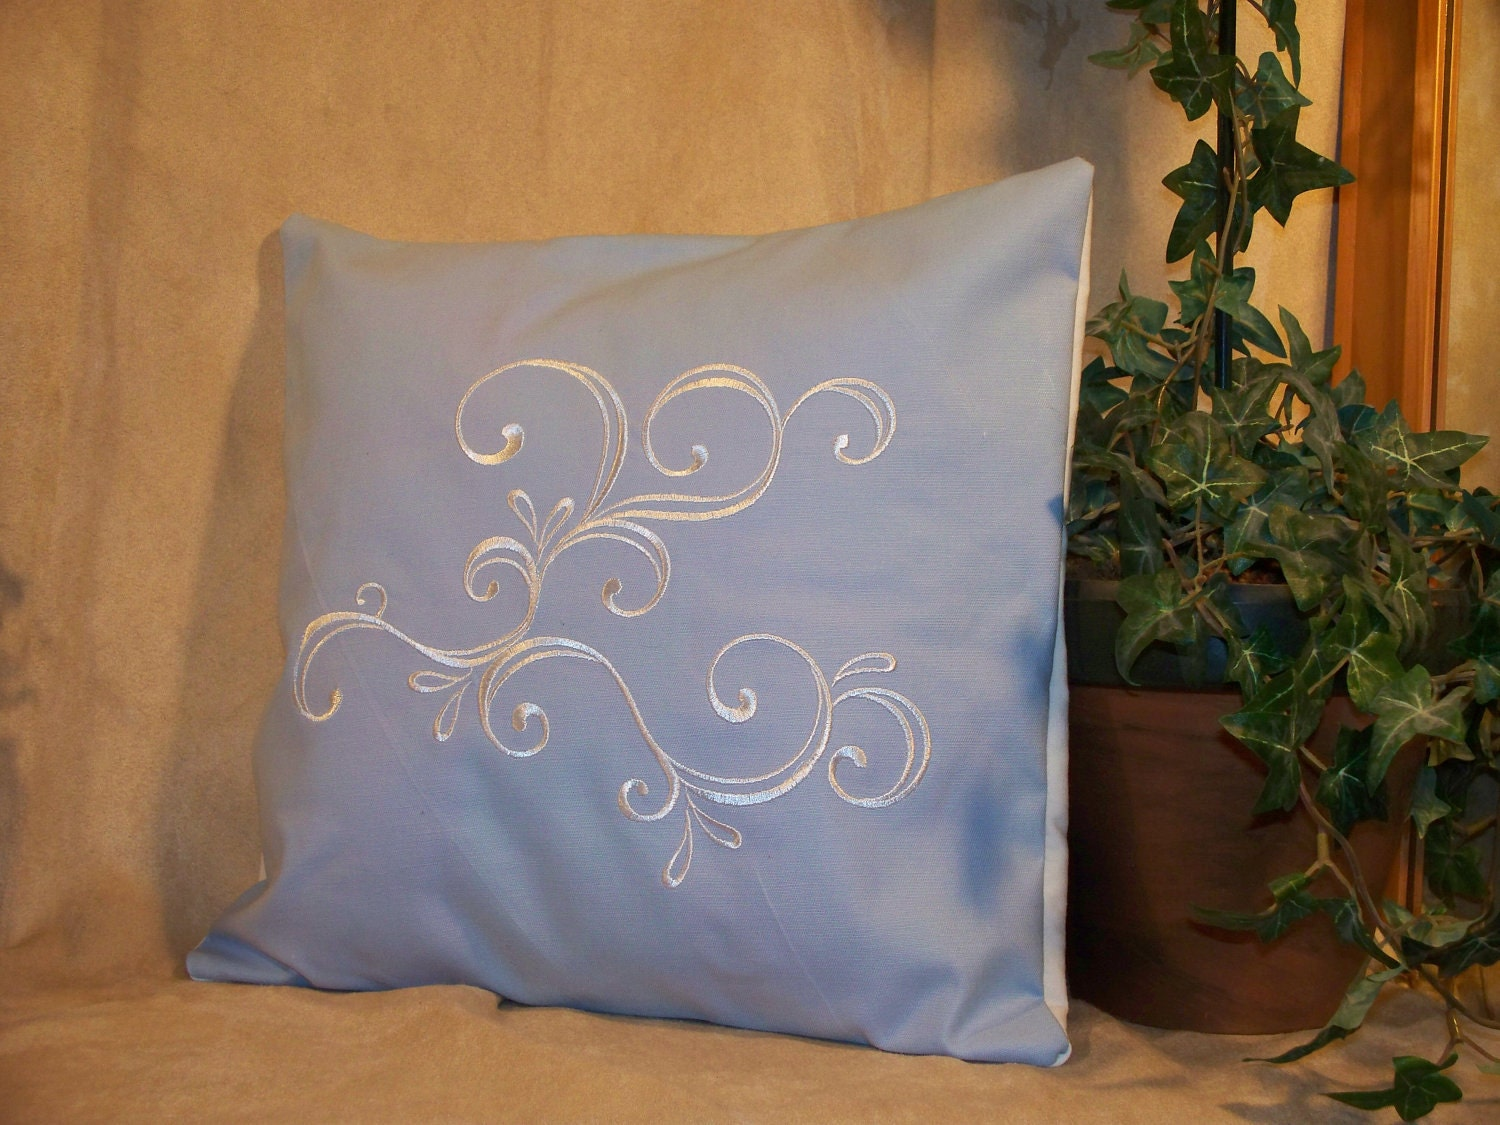 "12"" x 12"" Light Blue with White Embroidered Swirl Decorative Pillow Cover"